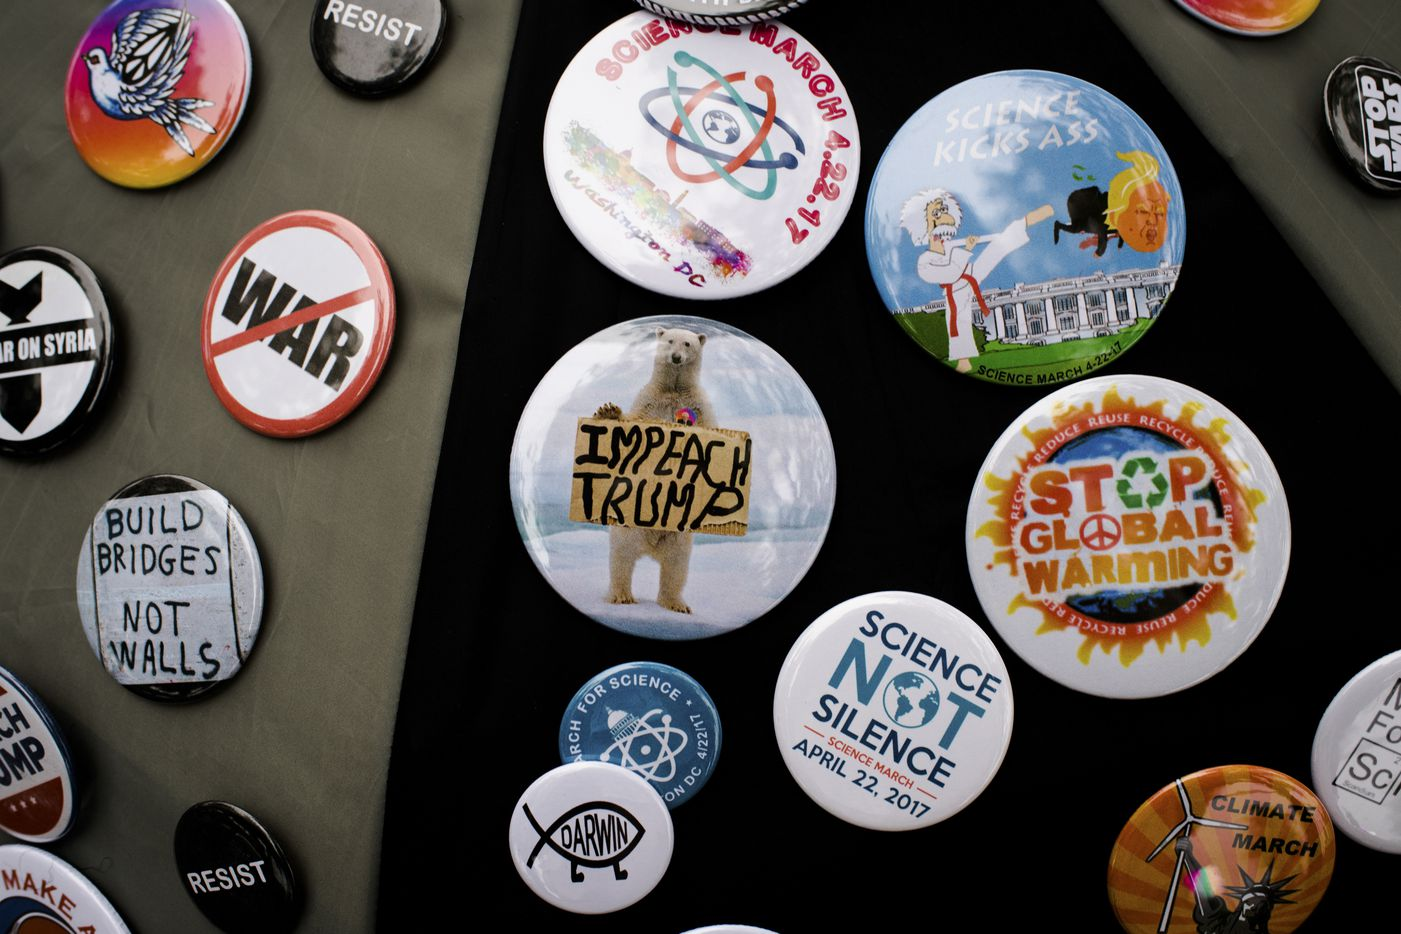 Buttons for sale outside of the Washington Monument before the March for Science in Washington, April 22, 2017. Thousands of scientists and science advocates demonstrated in Washington and in smaller events around the world to support, defend and celebrate the scientific enterprise. (Hilary Swift/The New York Times)